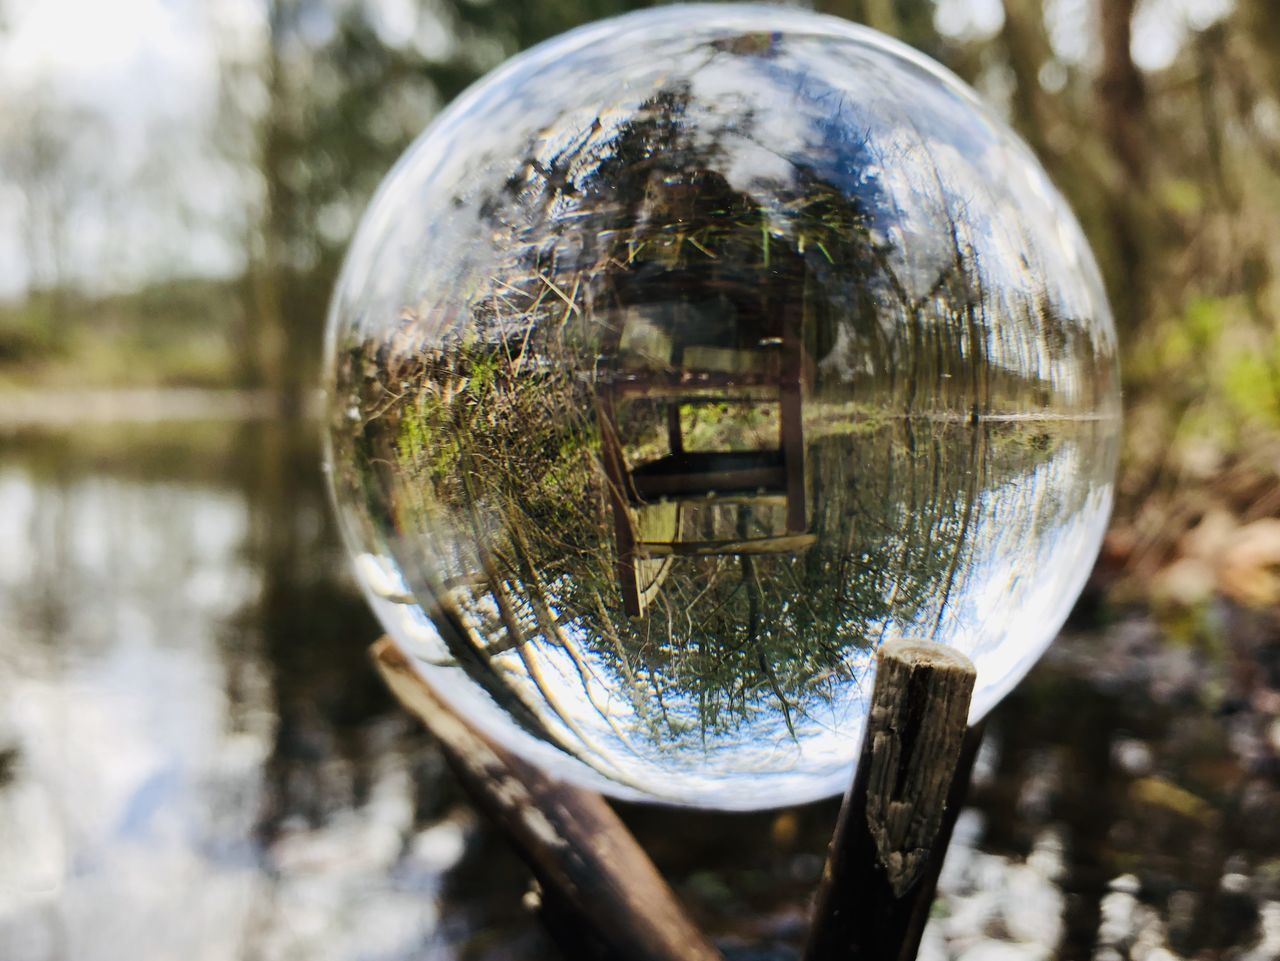 CLOSE-UP OF WATER BALL ON GLASS OF TREE